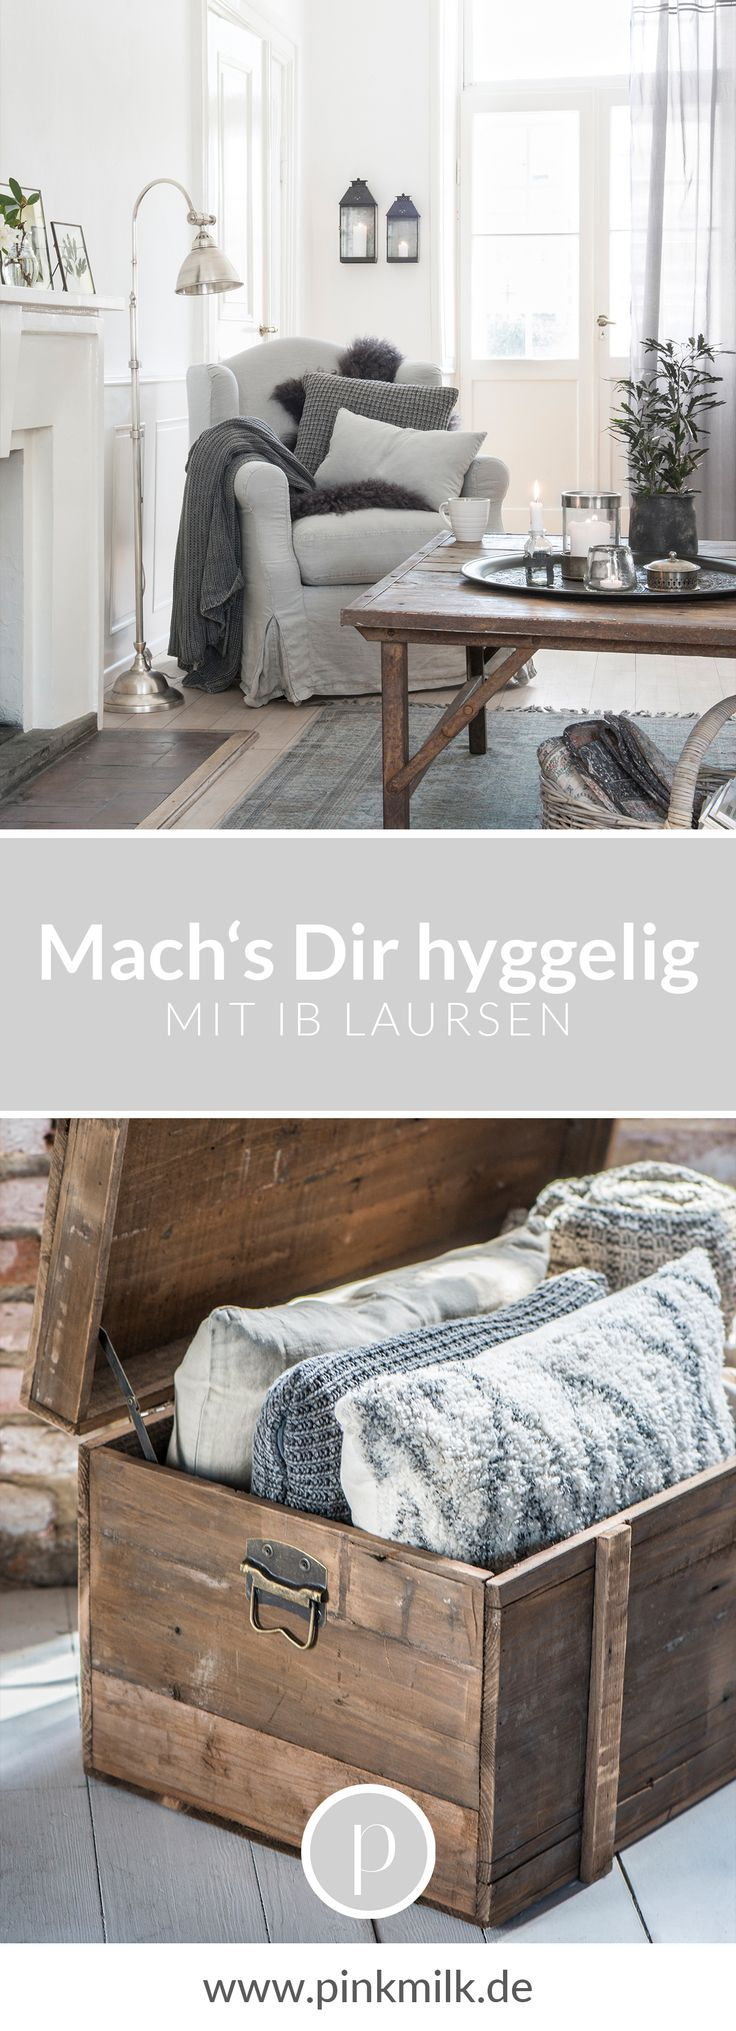 Make you hyggelig! With the great products of Ib Laursen in modern country home ...